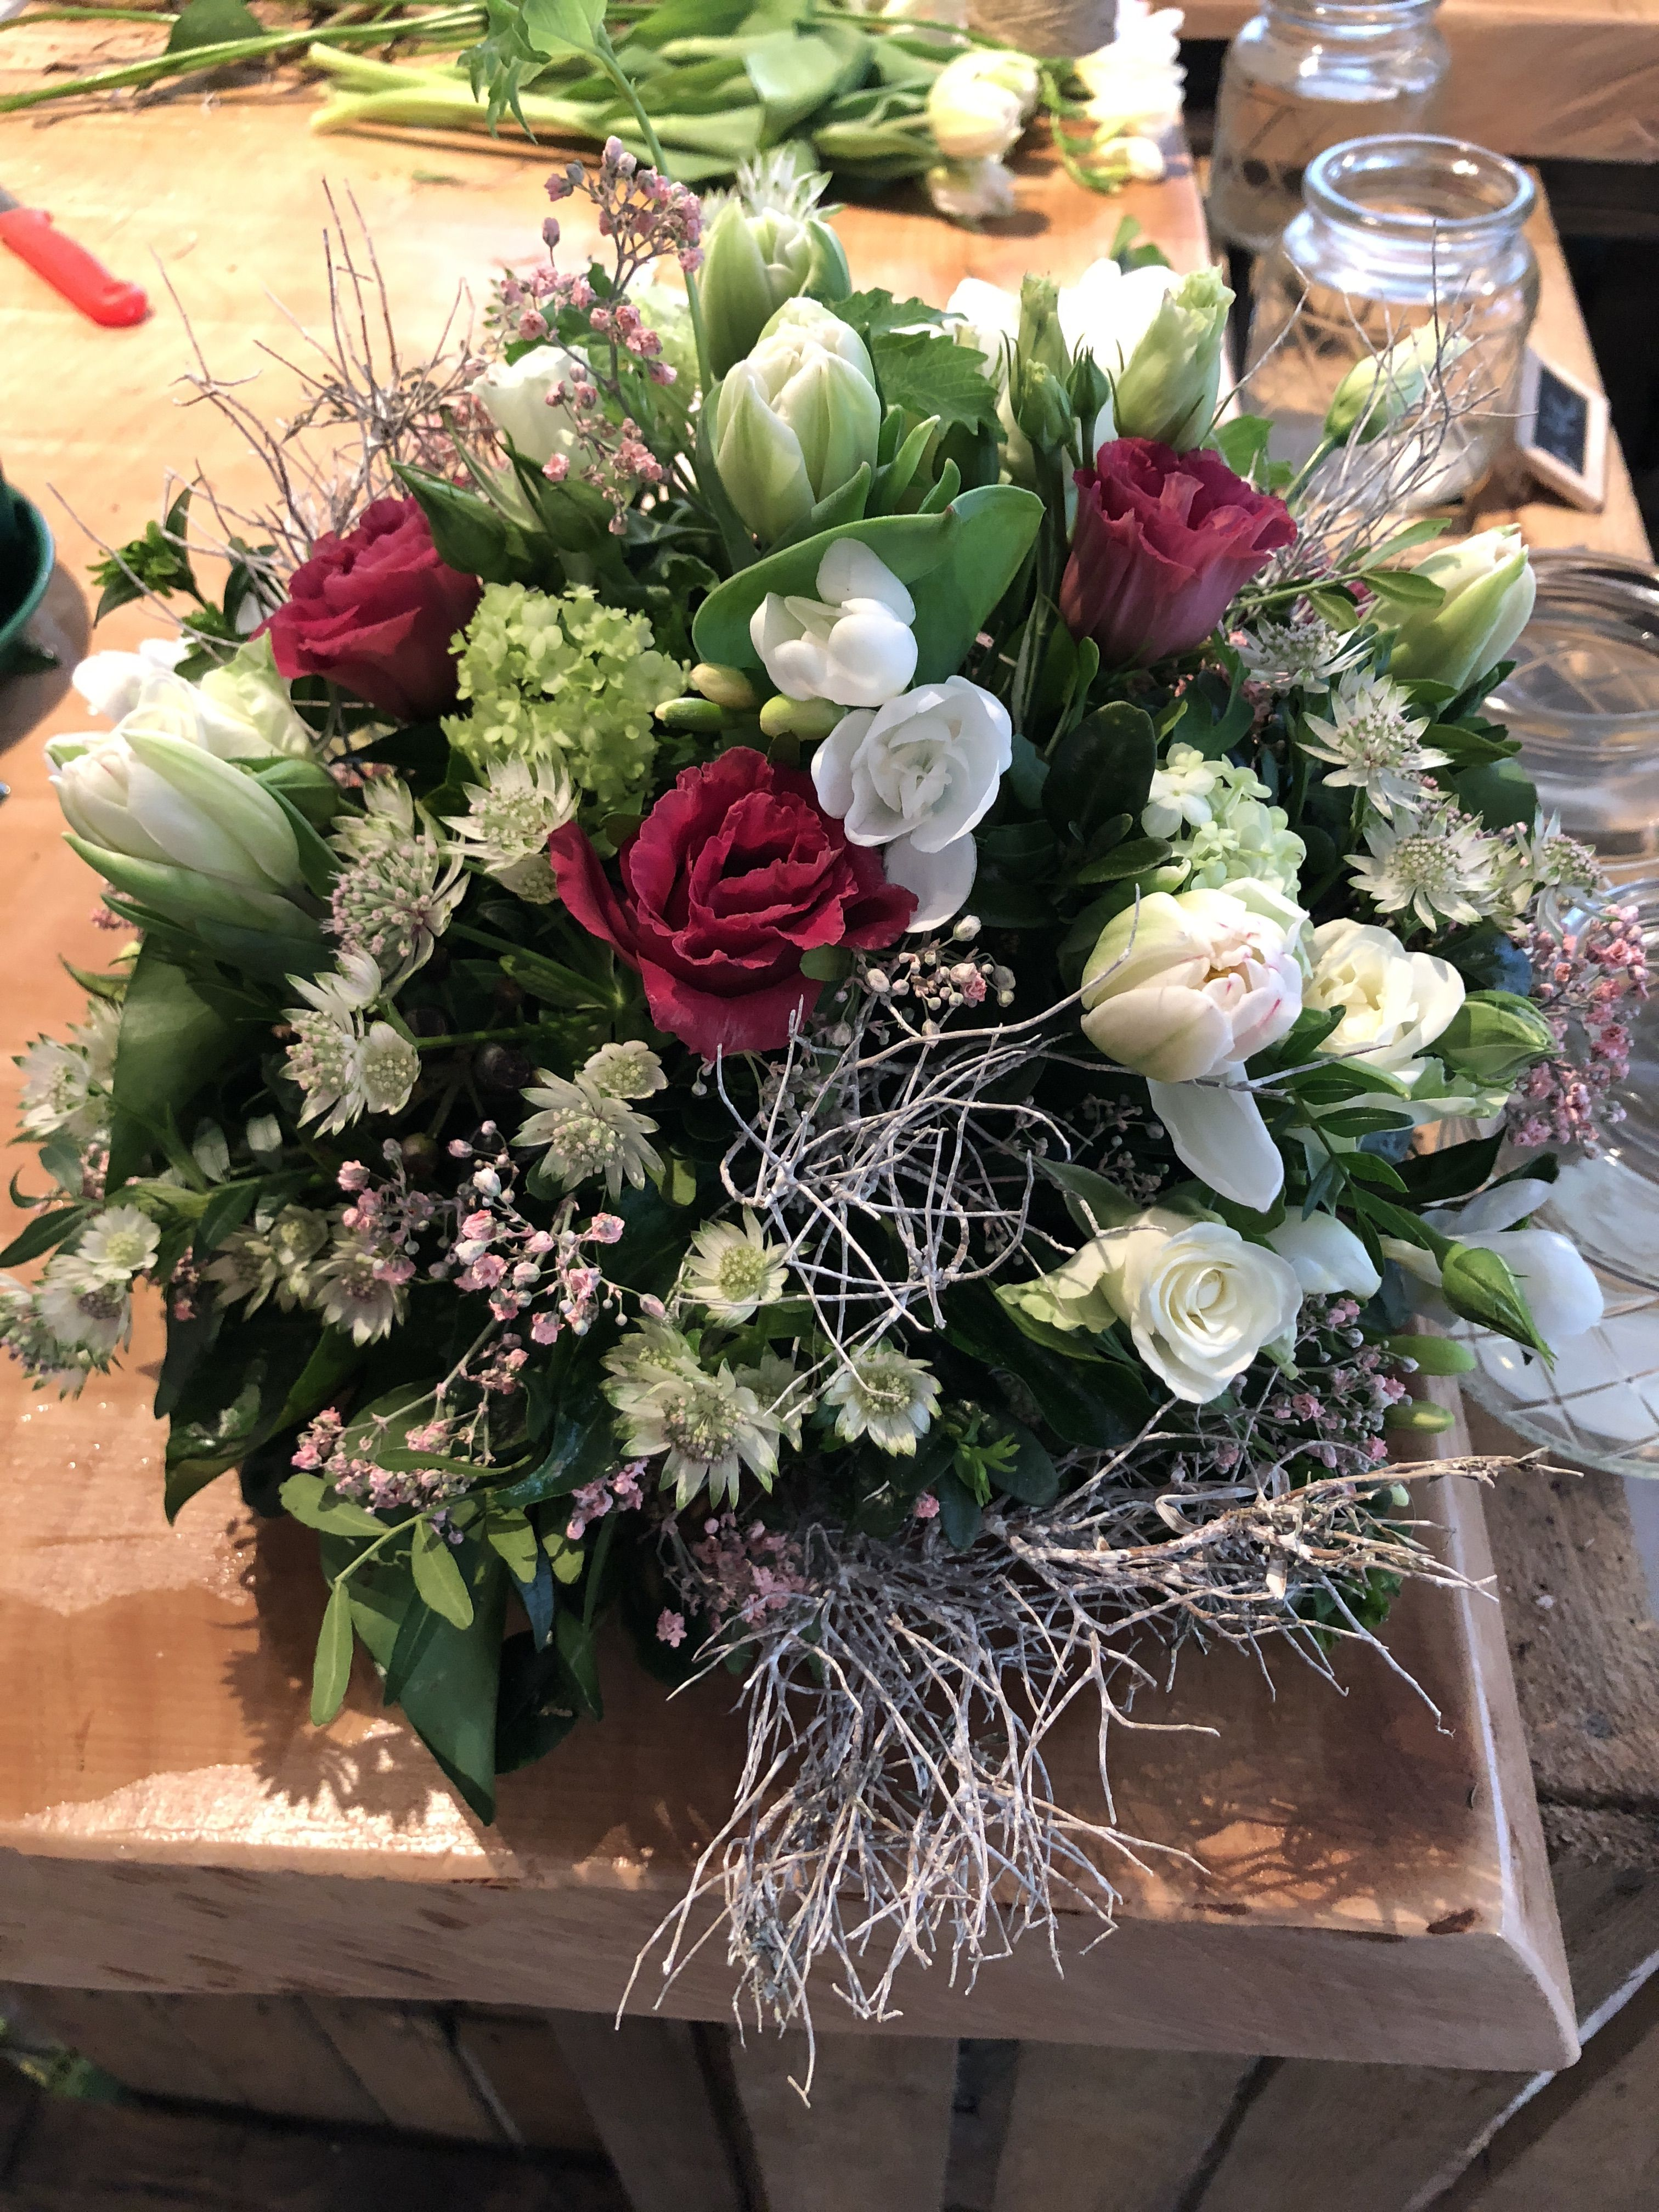 Garden Land Set Aside For The Cultivation Of Flowers Herbs Vegetables Or Small Flower Centerpieces Wedding Wedding Centerpieces Wedding Floral Centerpieces